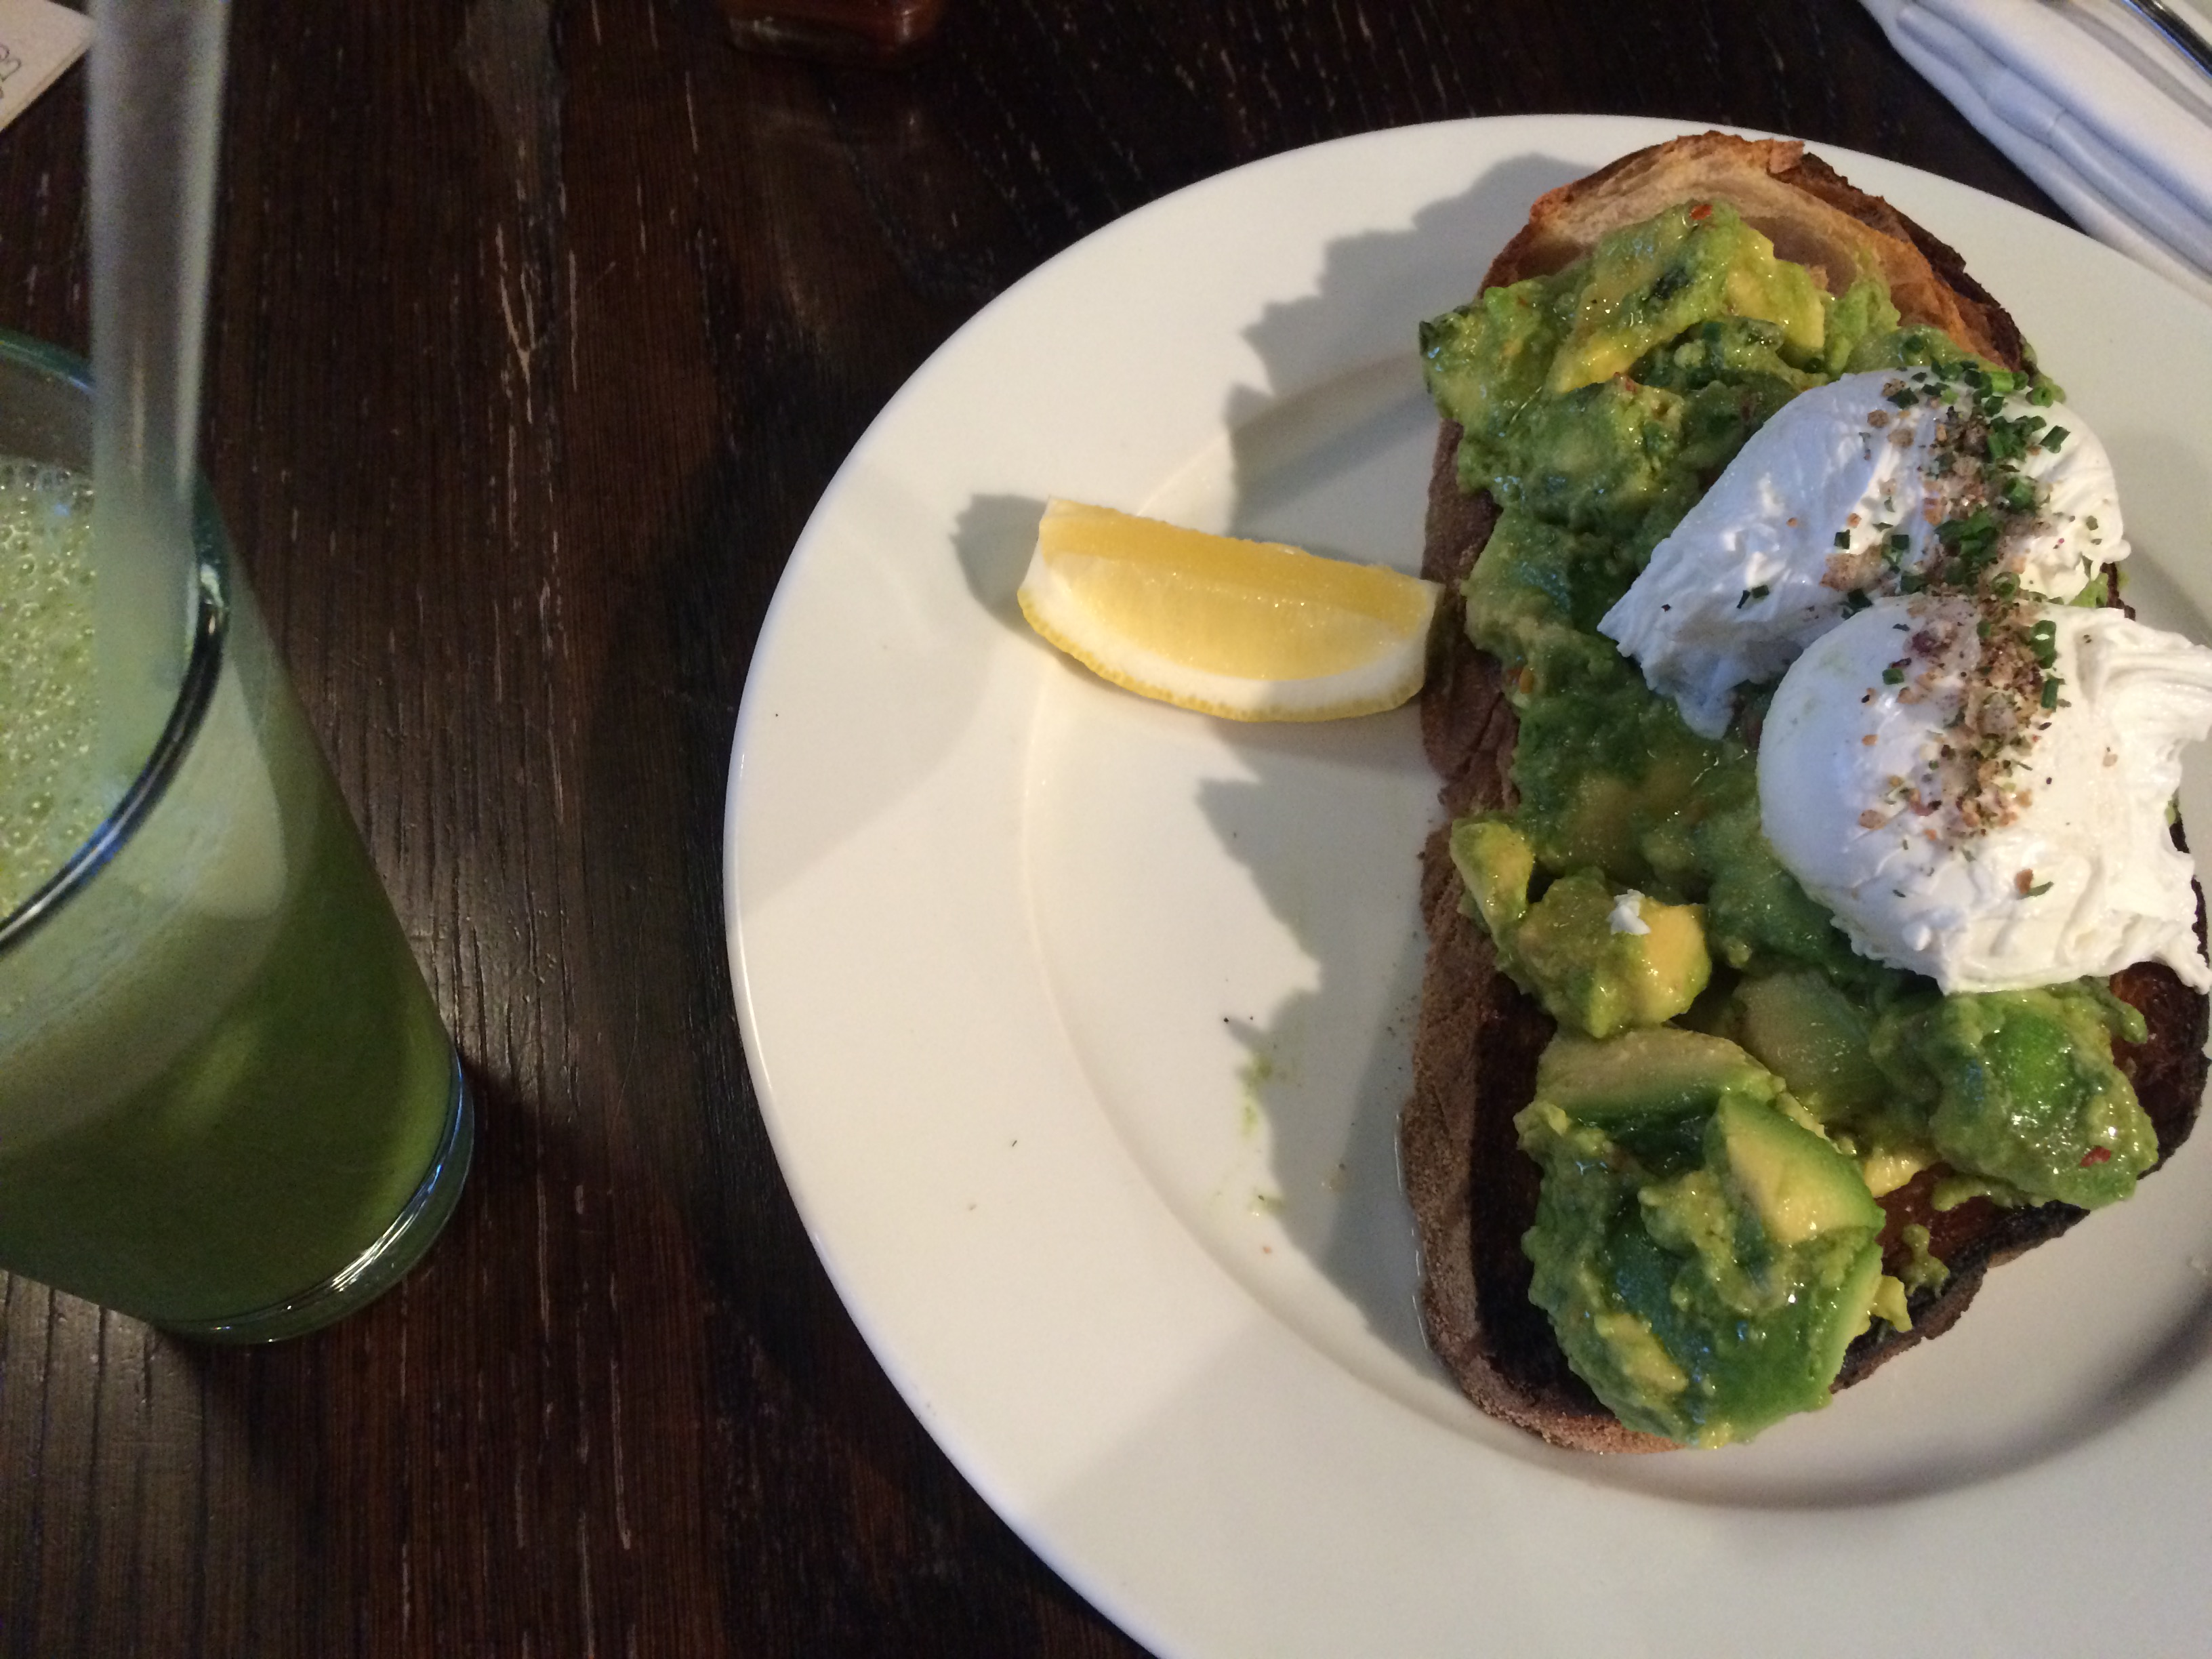 Avocado, poached egg, sourdough. Choice of smoothie: Go Green